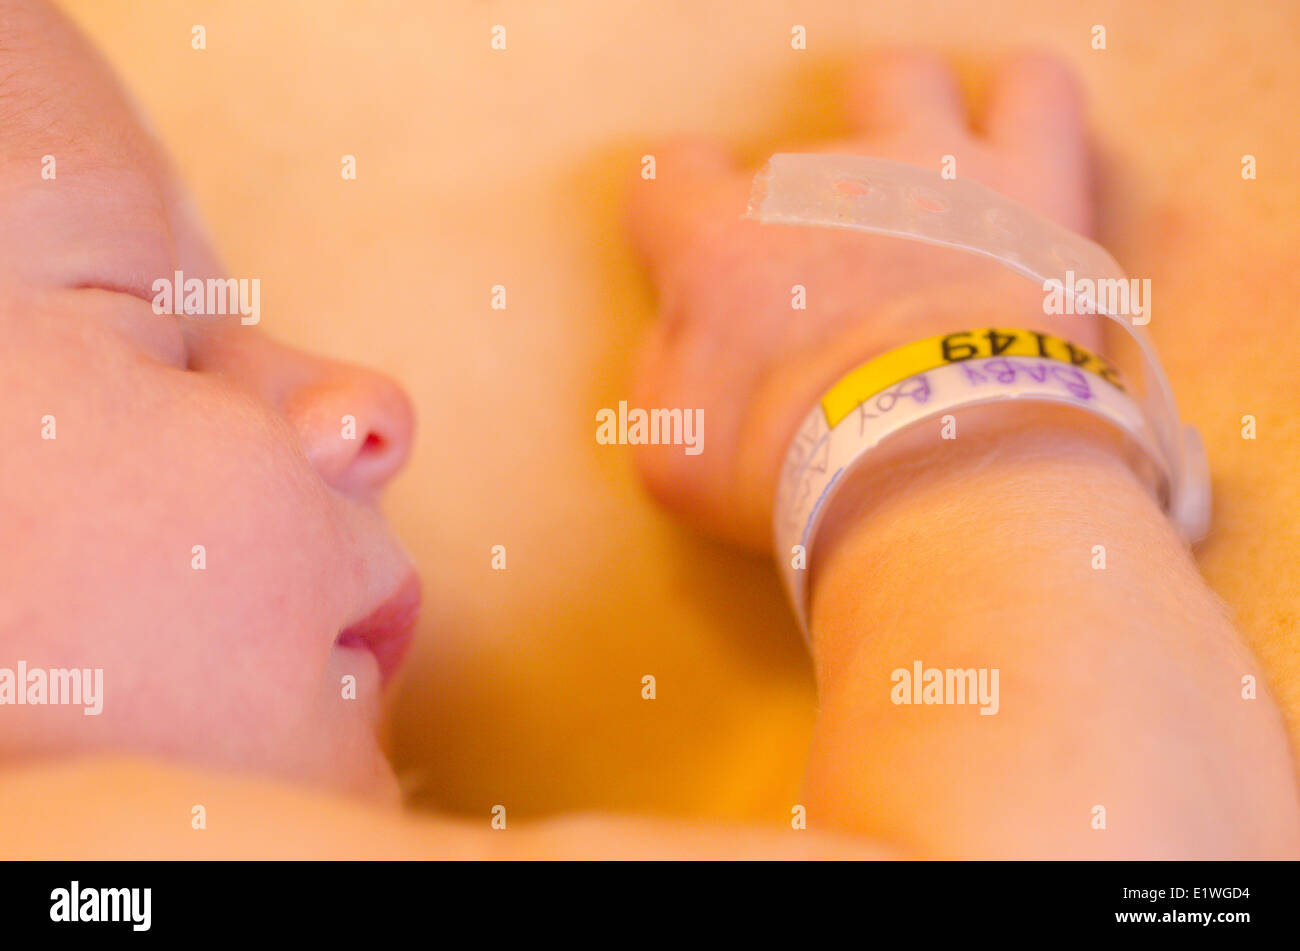 A one-day old newborn baby is fresh out of the womb and catalogued in the hospital nursery - Stock Image